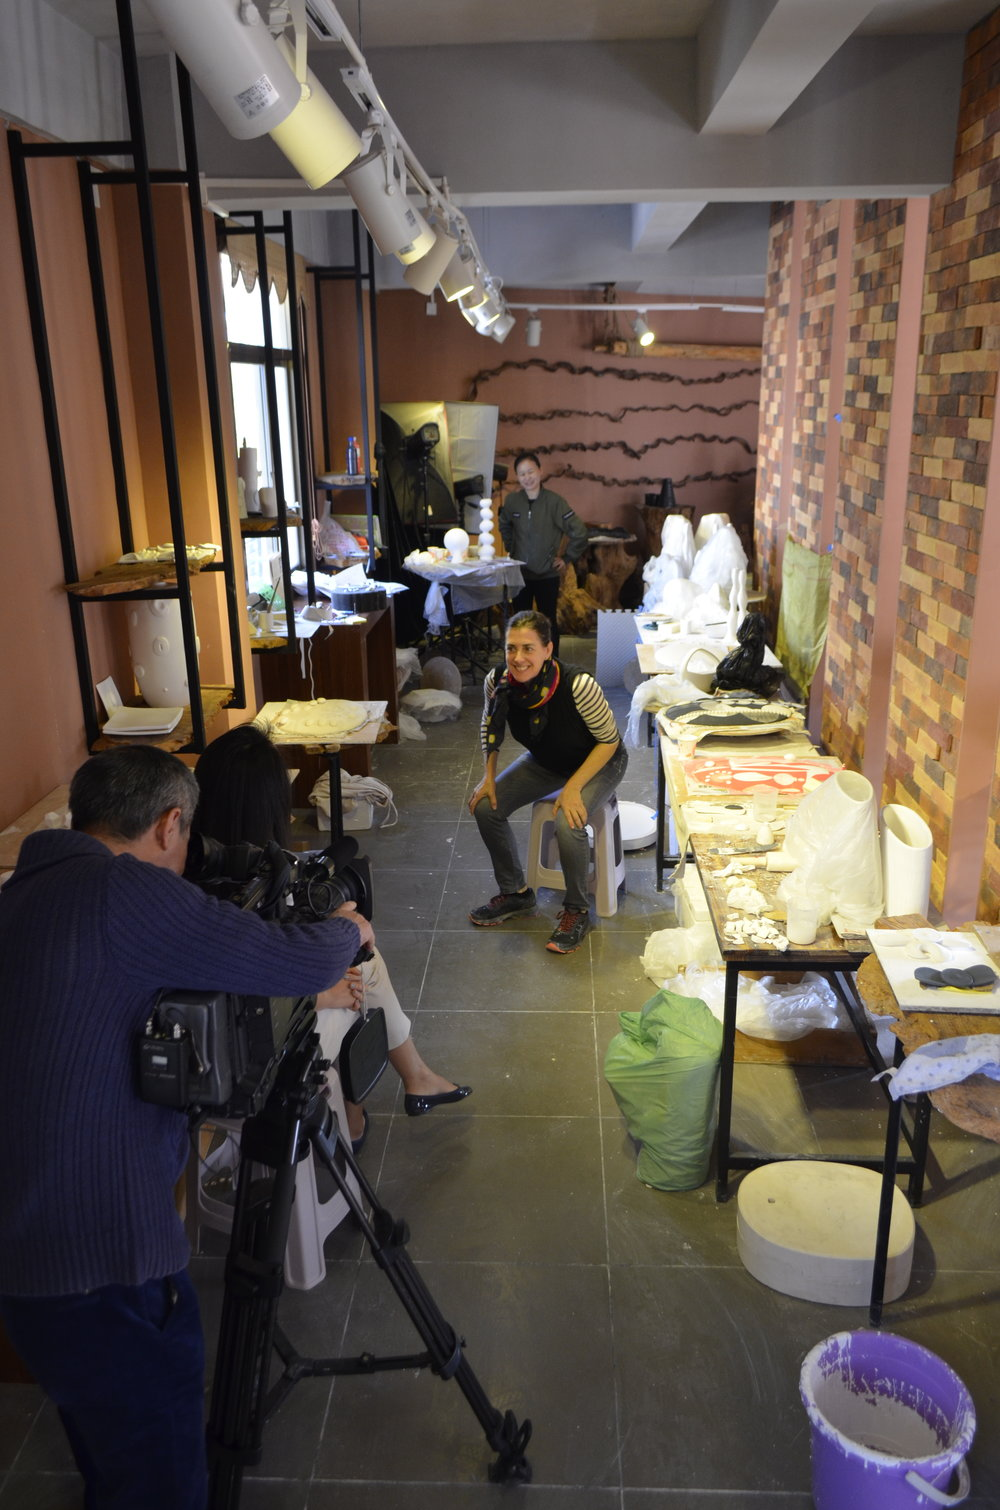 - Blanc de Chine International Artist Residency 2018http://www.blancdechineicaa.com/Fall 2018Fujian Province, ChinaFilm crew making the Blanc de Chine trailer in my beautiful studio for two months in Dehua, China*see blog for more images